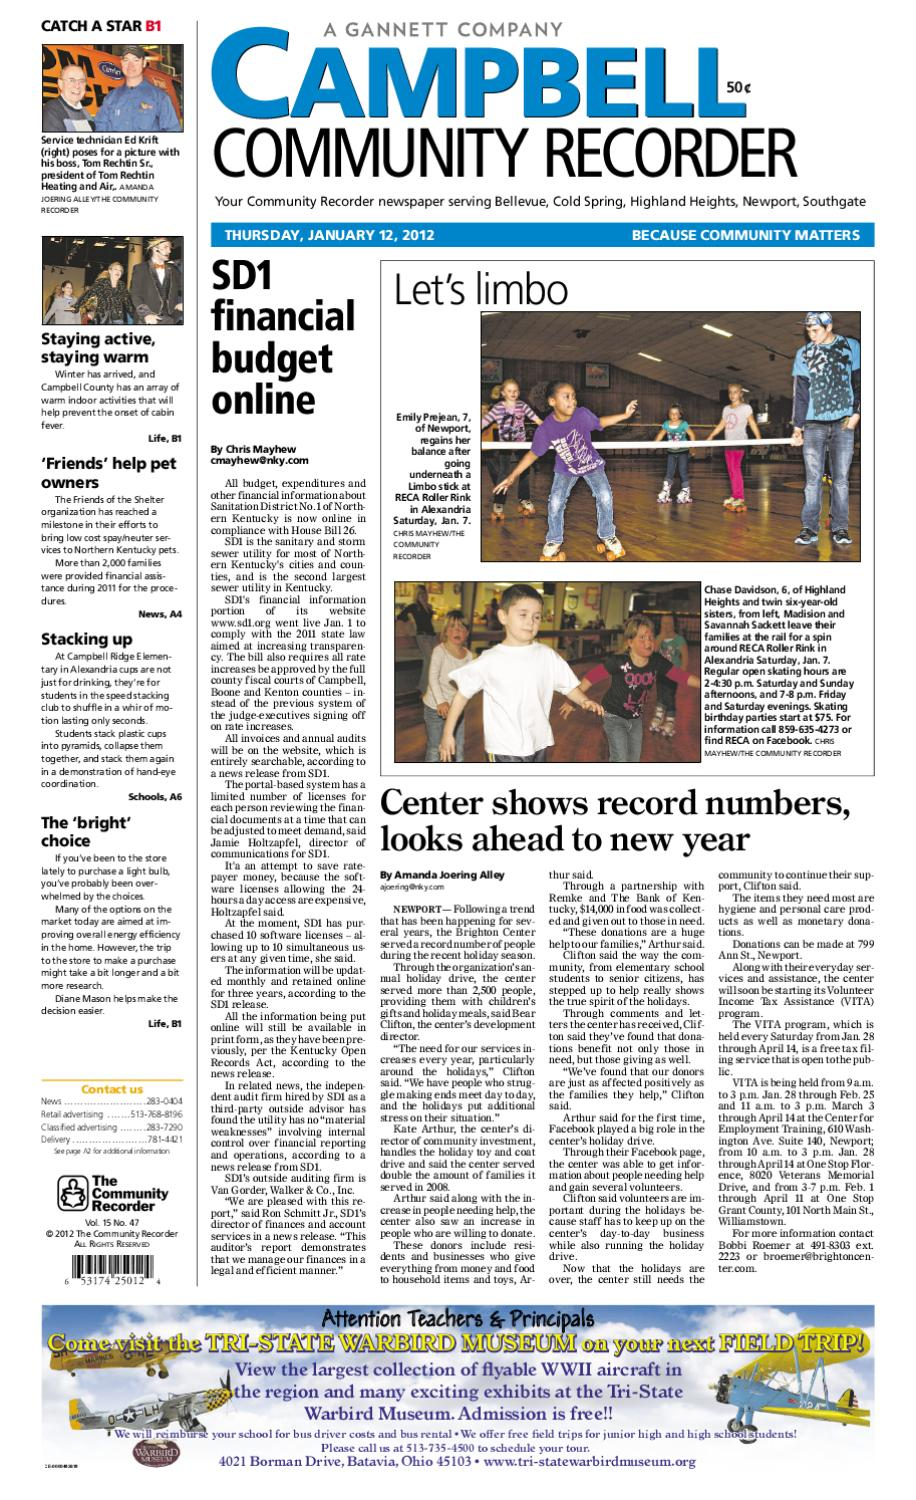 Campbell Community Recorder 011212 By Enquirer Media Issuu